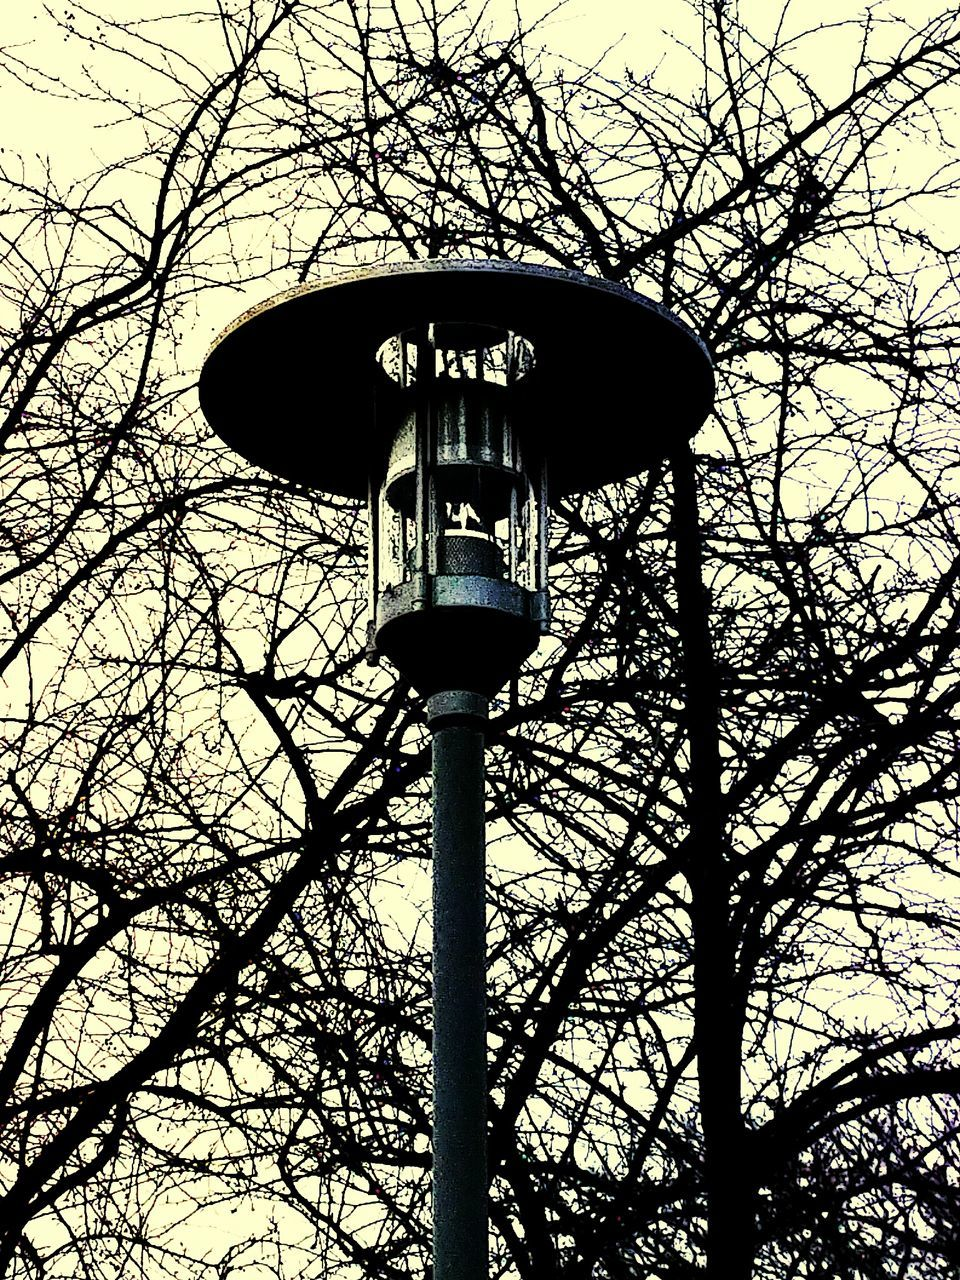 Low Angle View Of Lamp Post Against Bare Trees